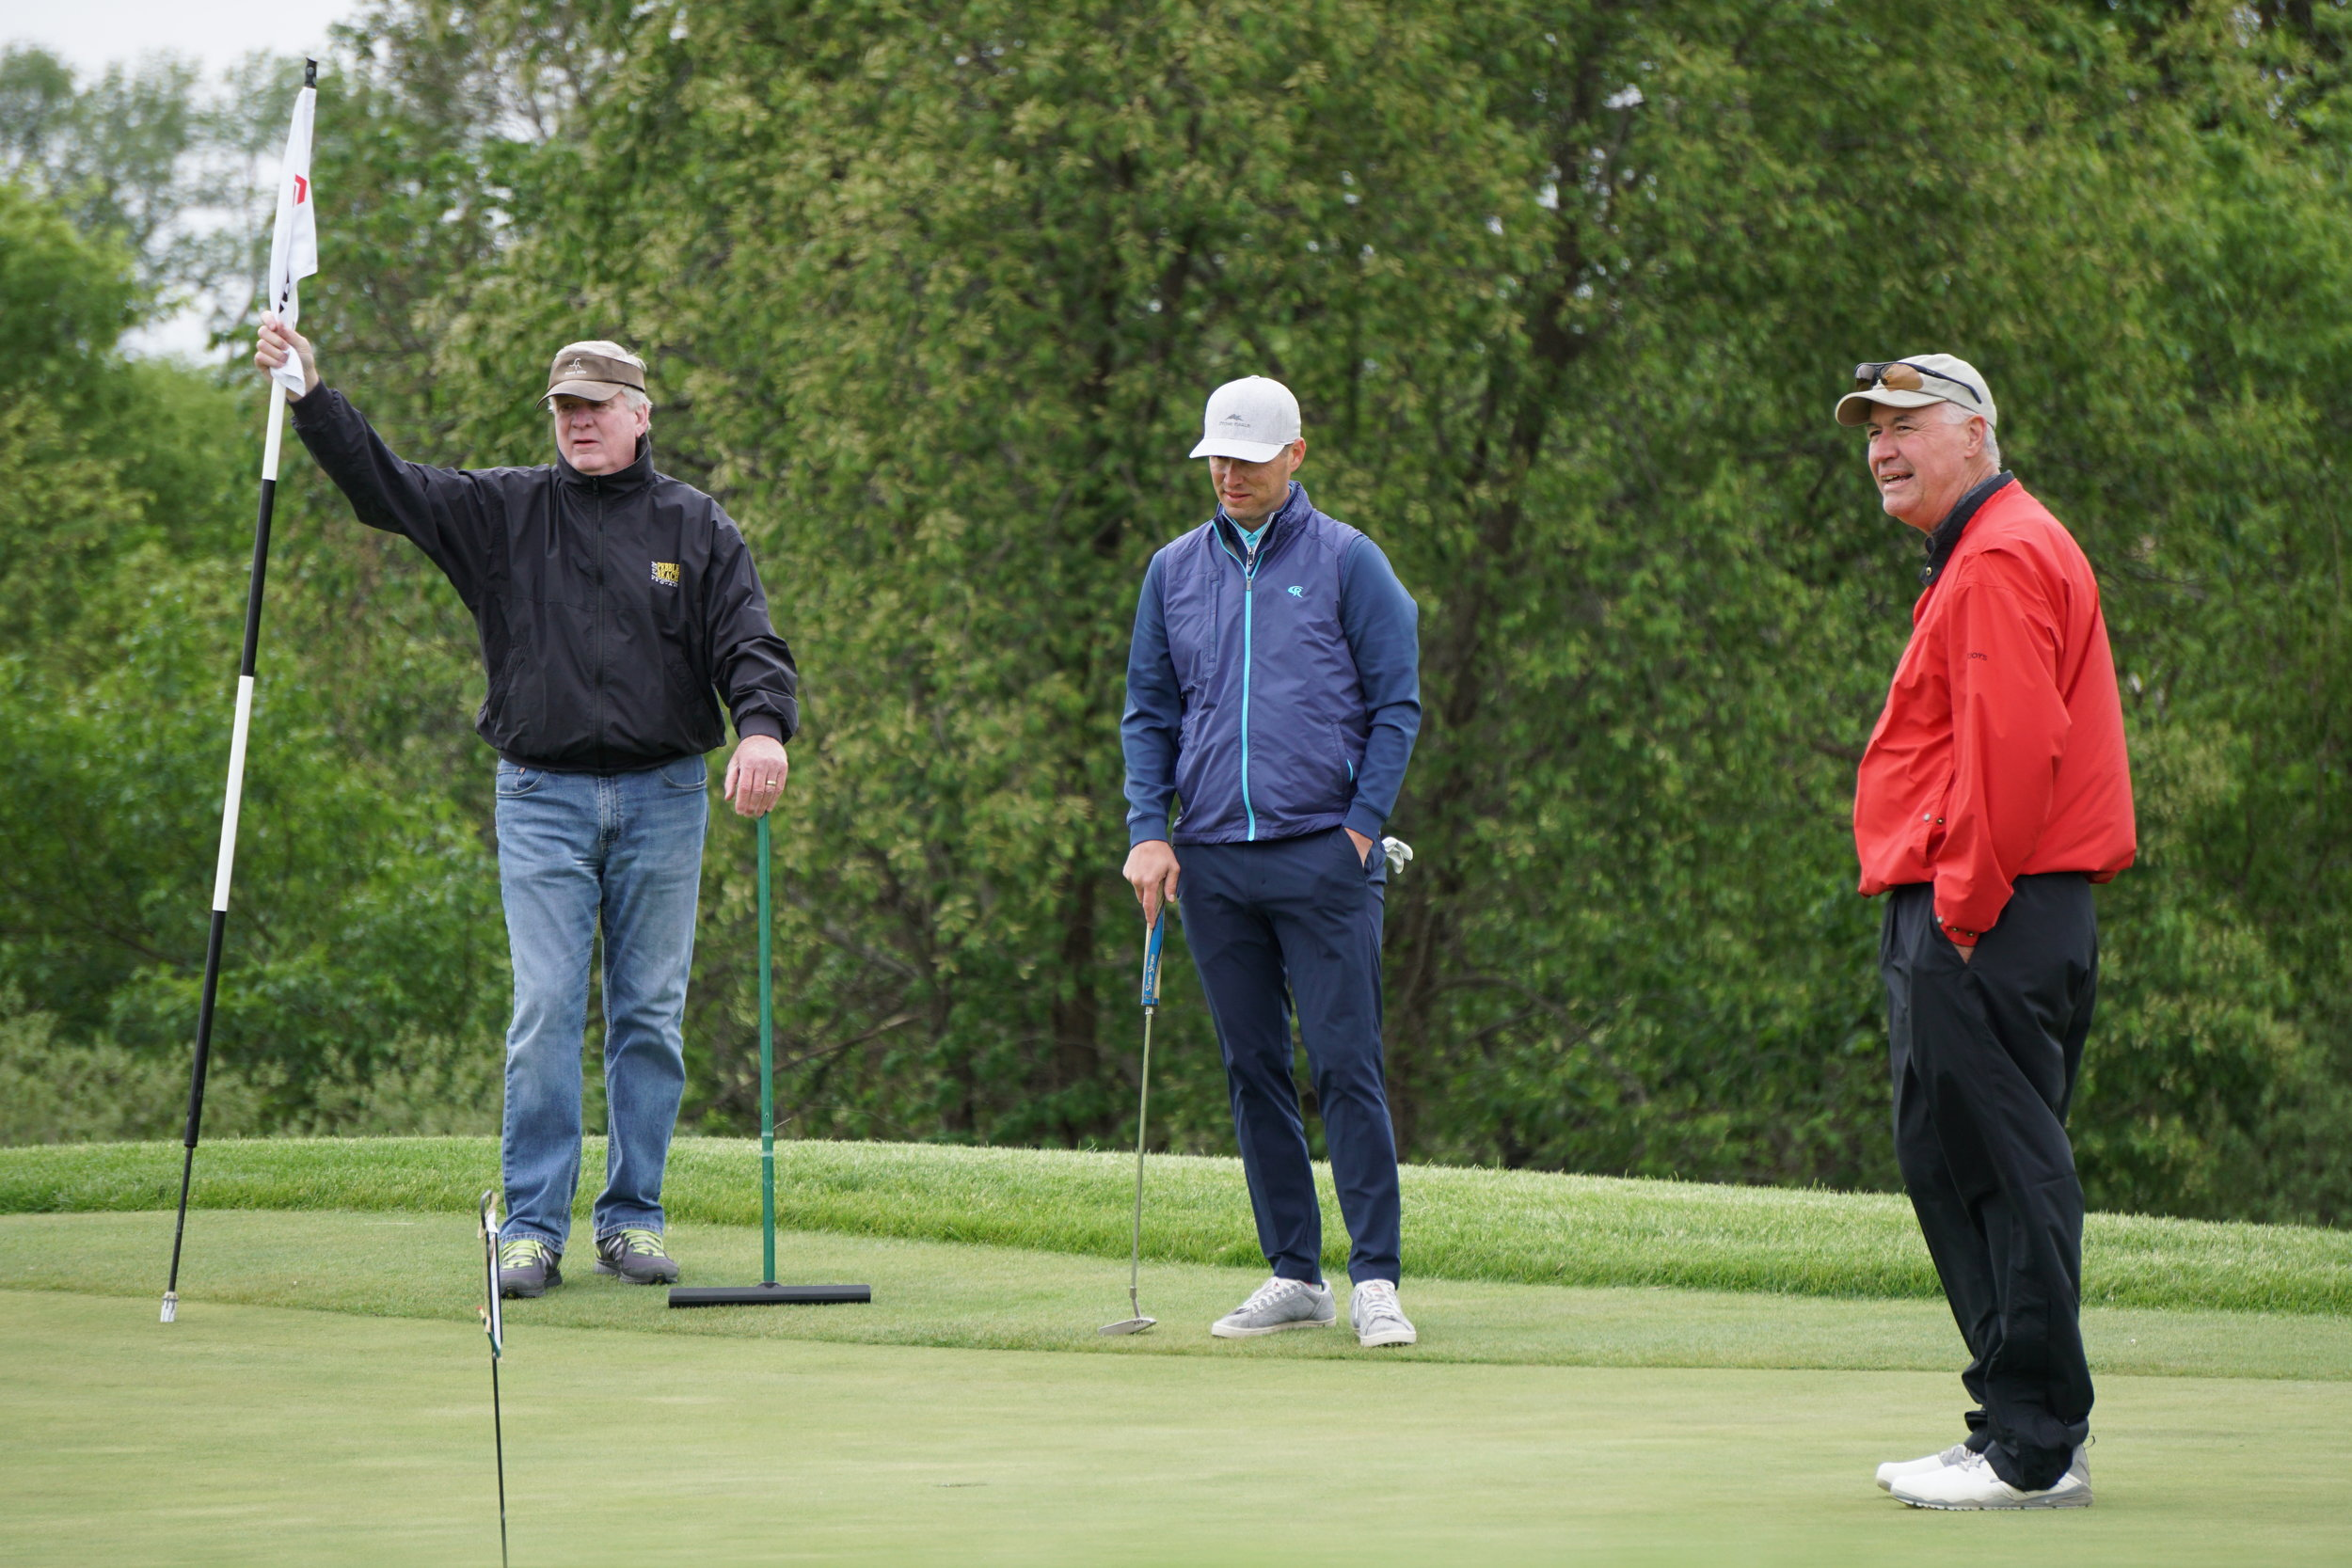 5.20.19_HuskerCatholicGolf_a6300_53.JPG